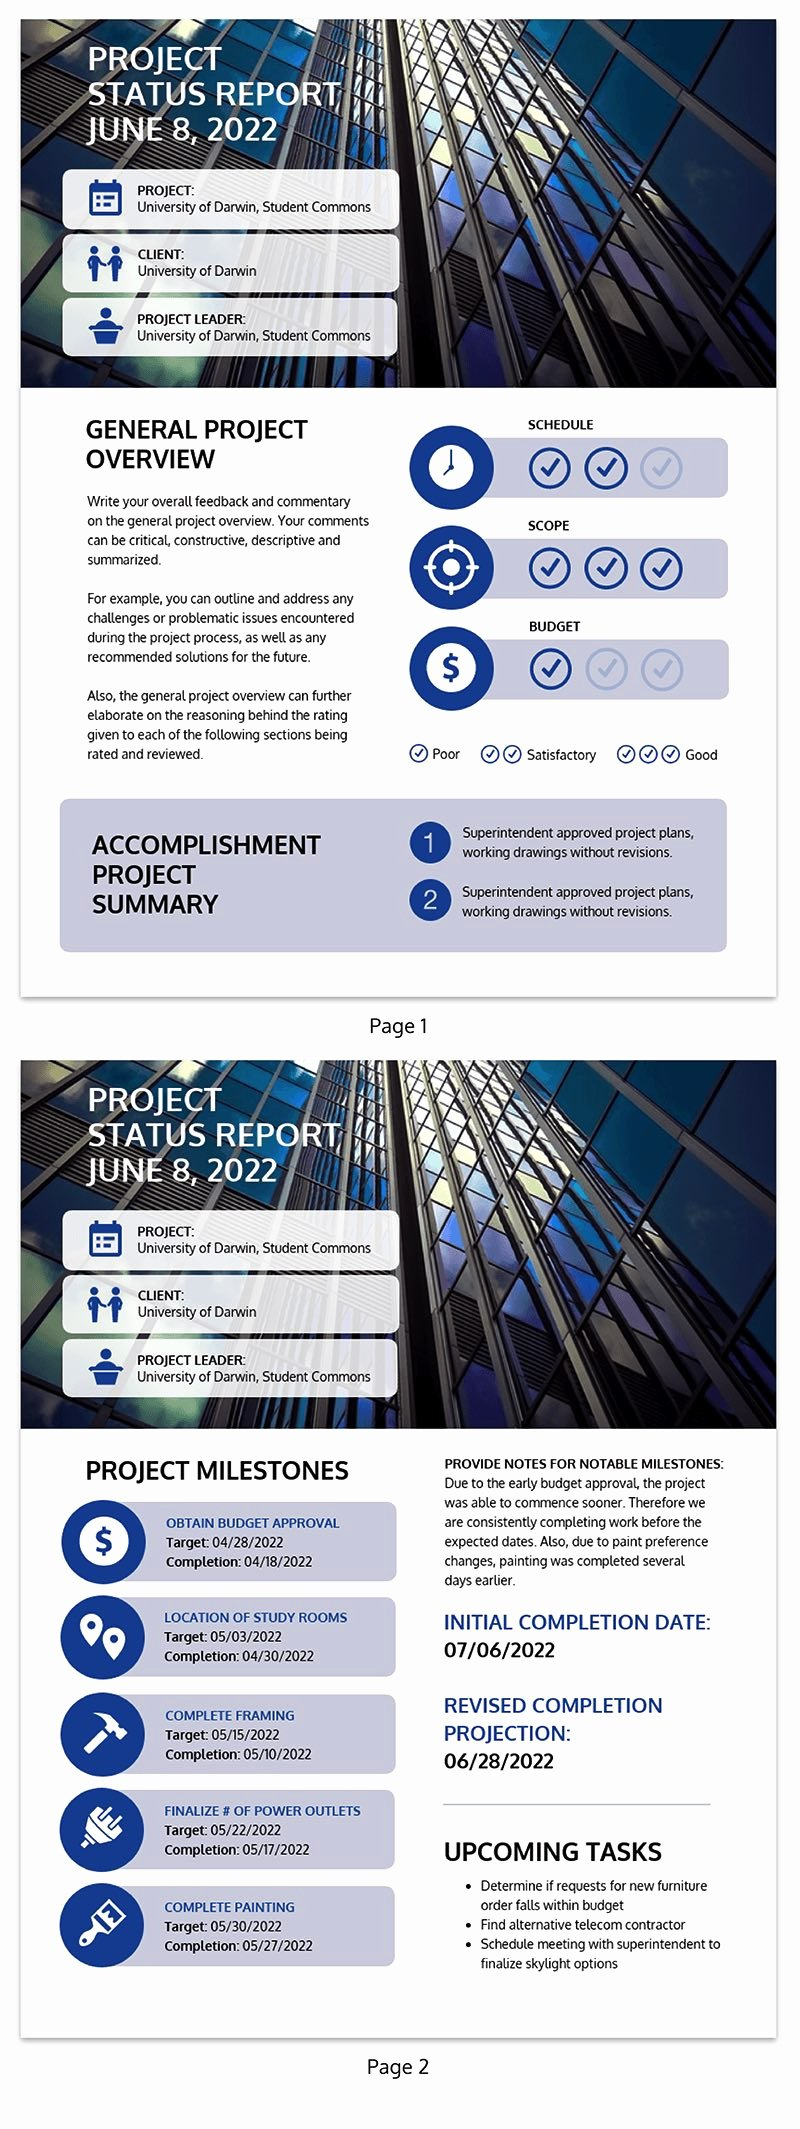 Business Report format Template Best Of 30 Business Report Templates Every Business Needs Venngage